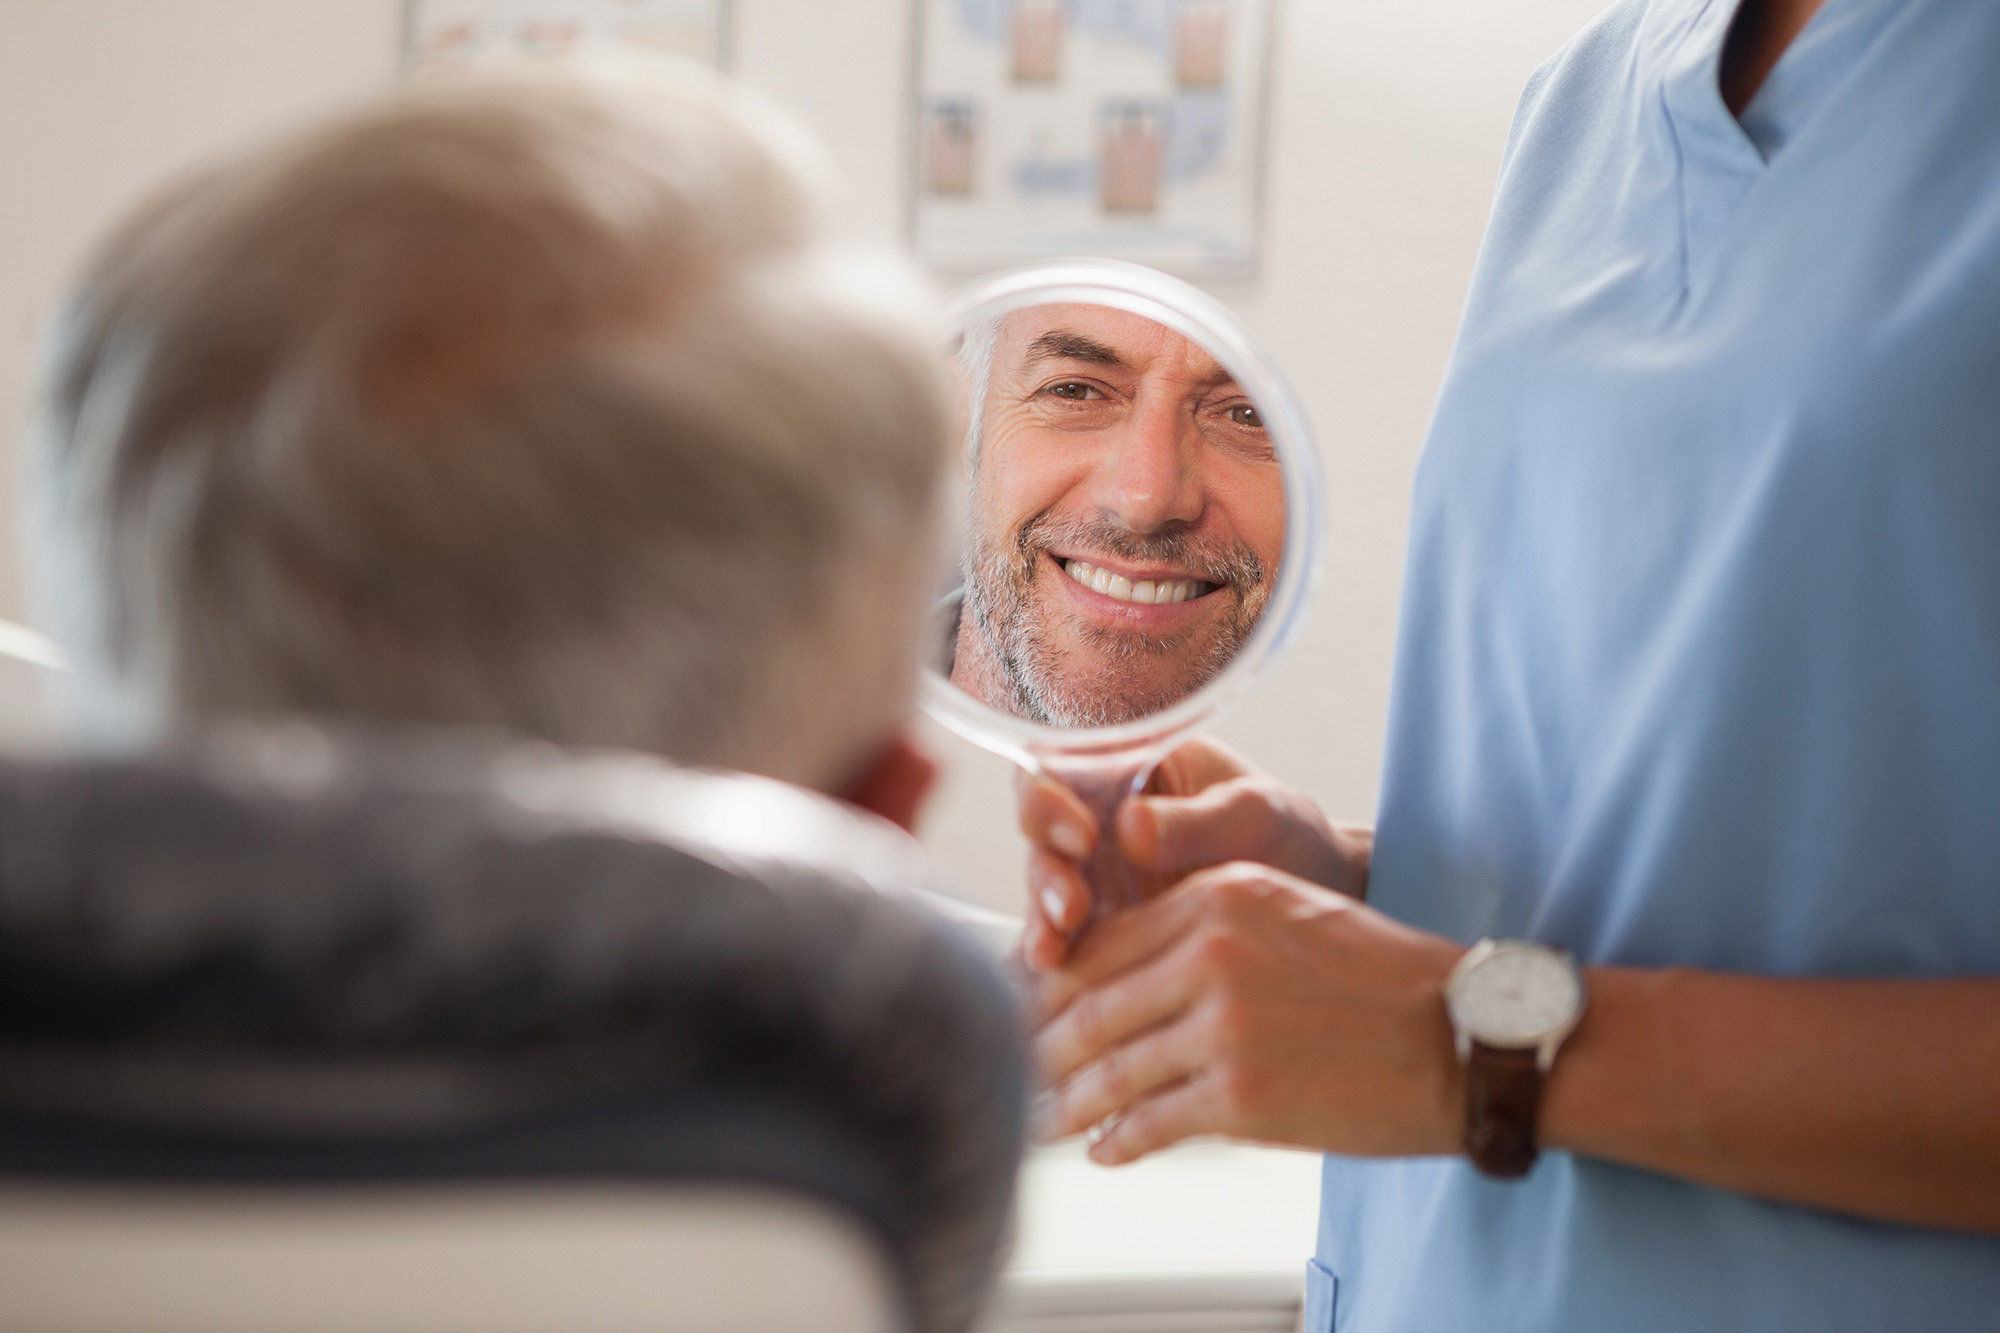 Dentist holding up mirror for patient to smile into